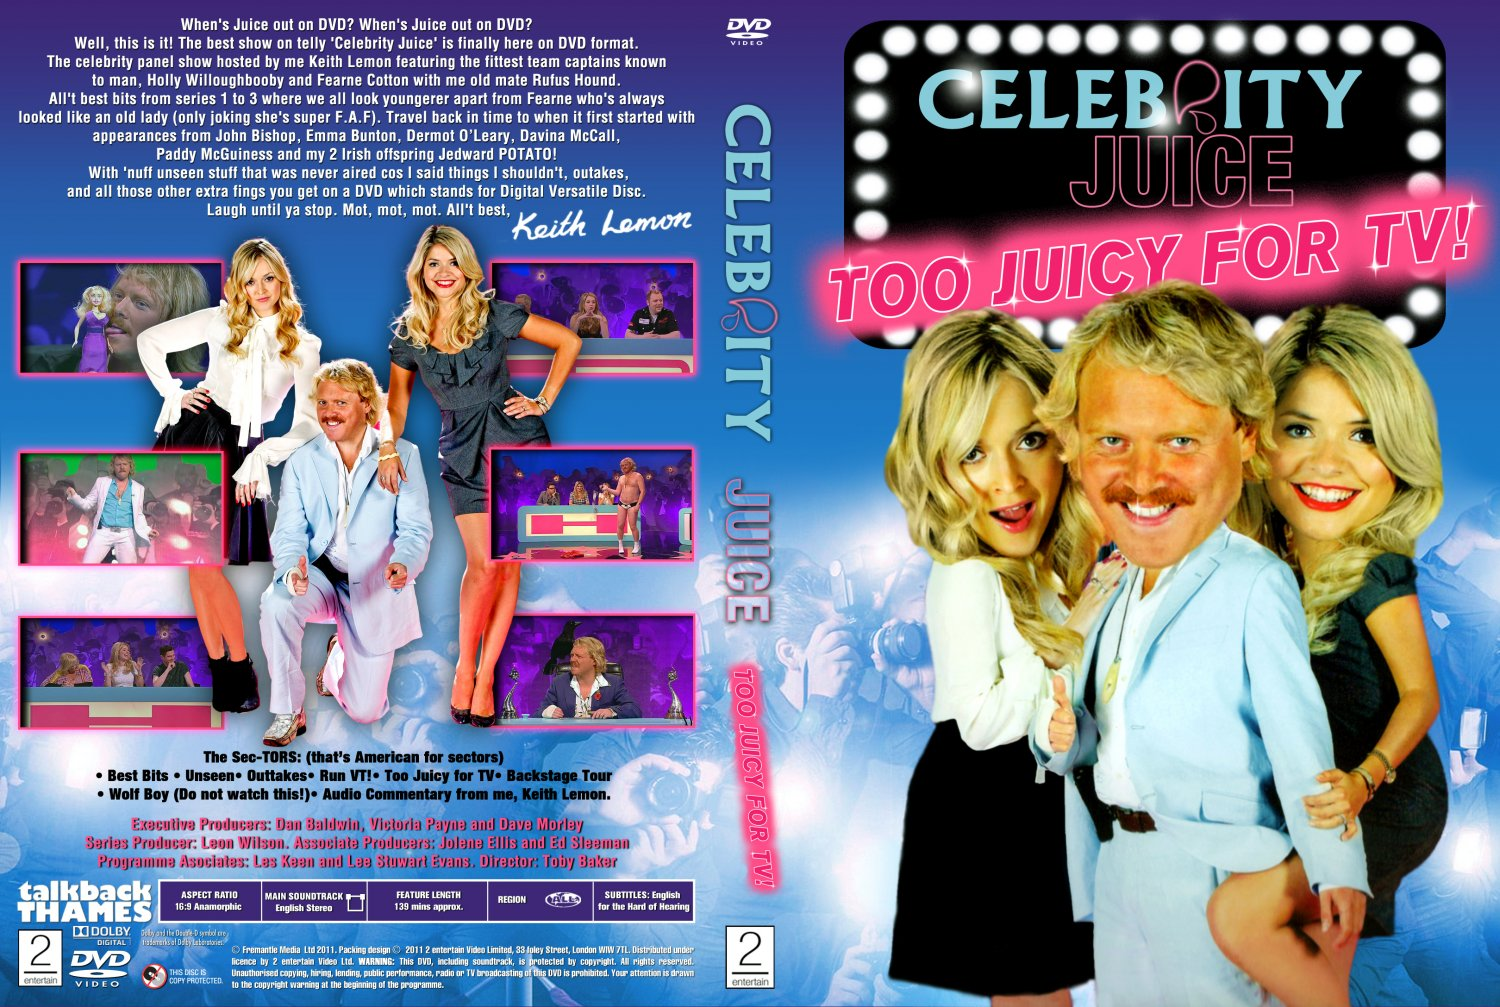 Celebrity Juice Dvds - CABBAGE JUICE RECIPE